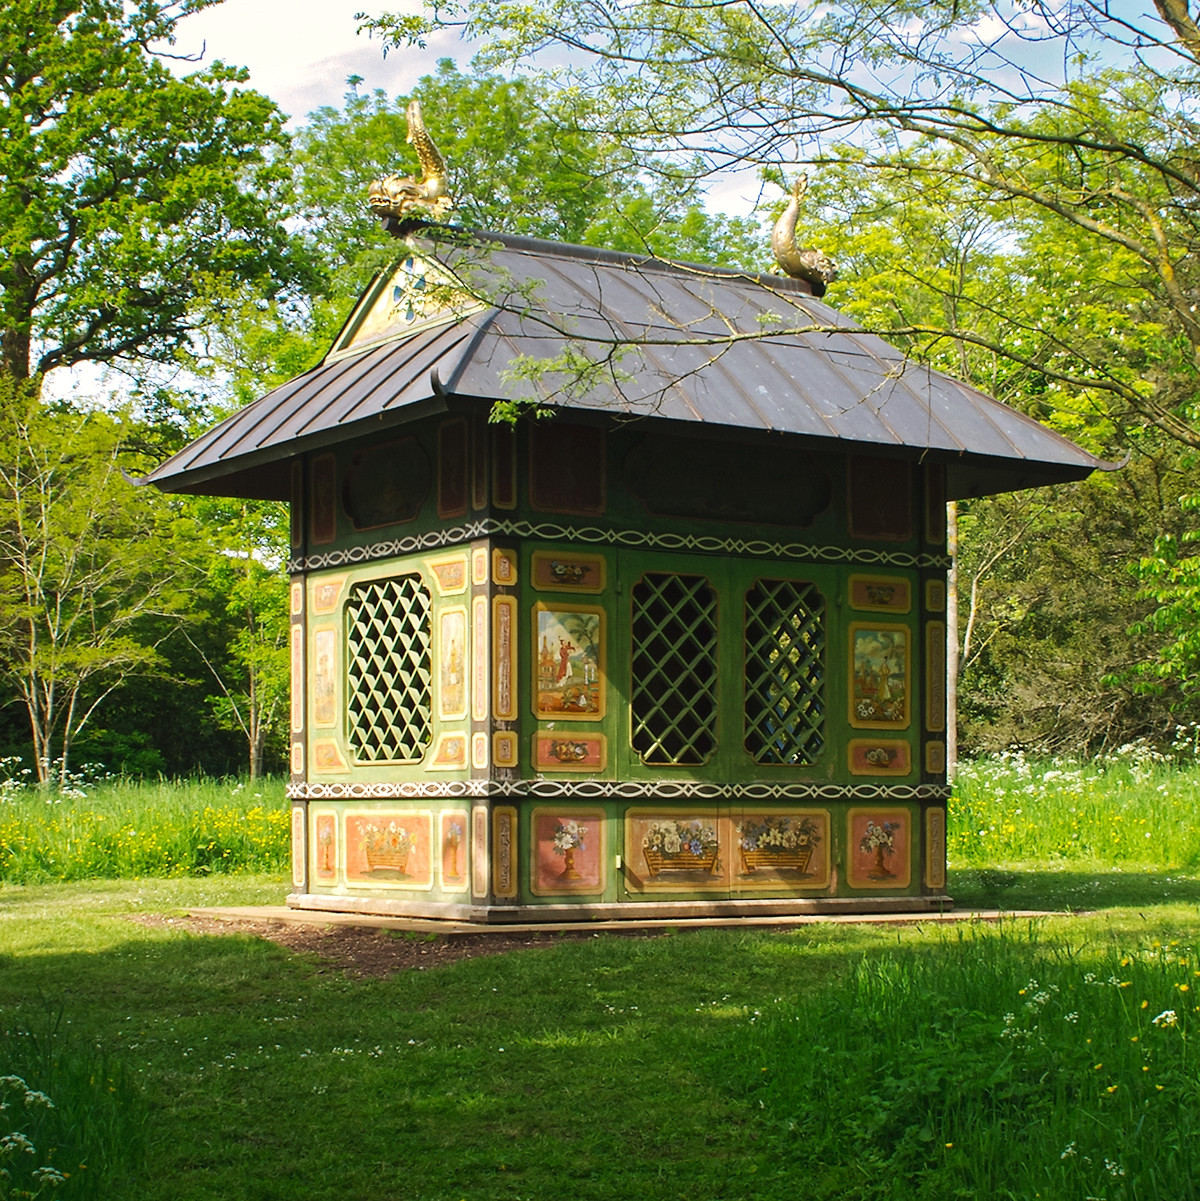 Chinese House, Stowe Landscaped Gardens, Buckinghamshire, England